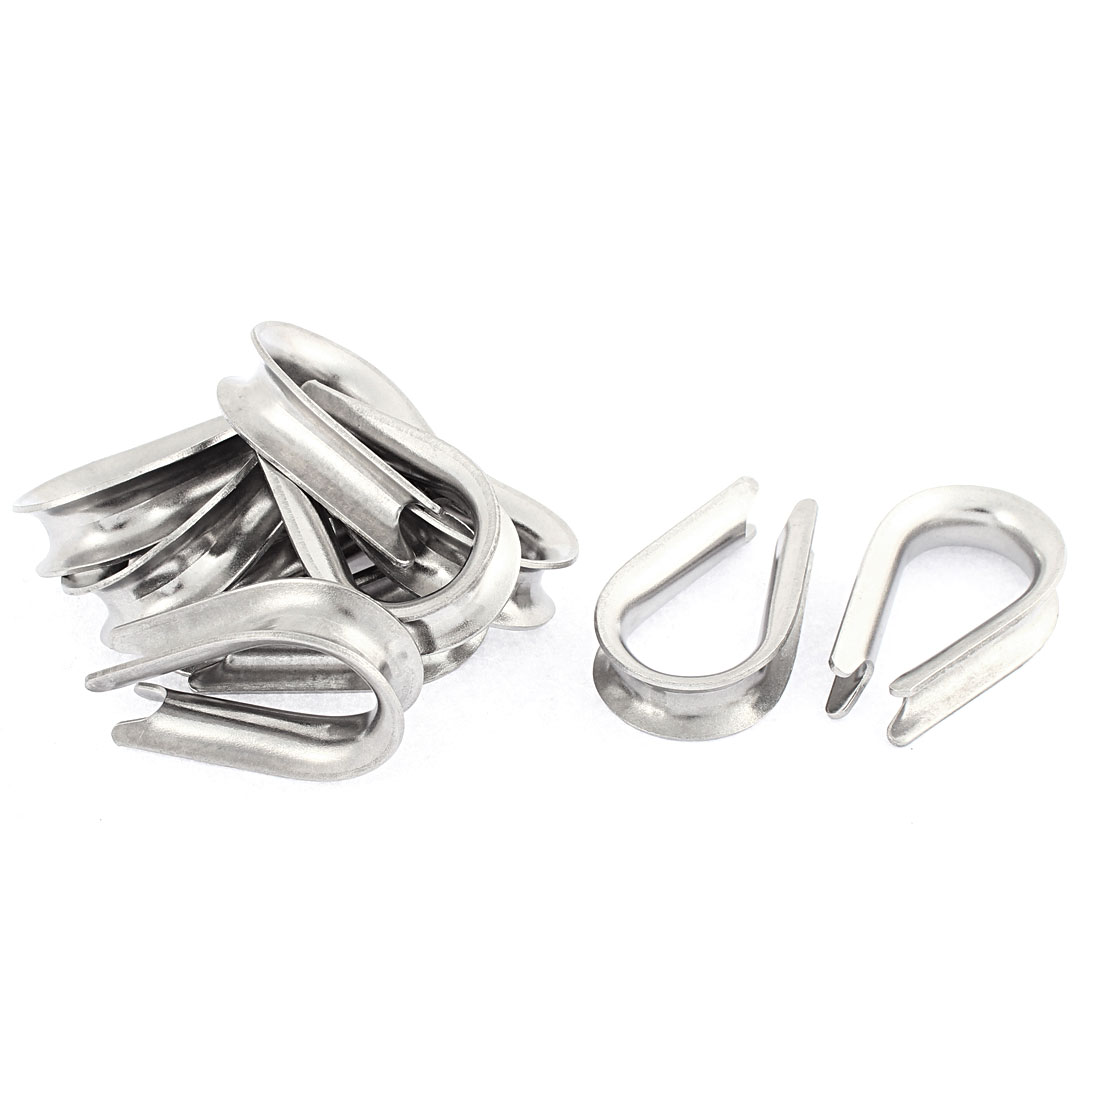 Stainless Steel 8mm Standard Wire Rope Cable Thimbles Rigging 10pcs